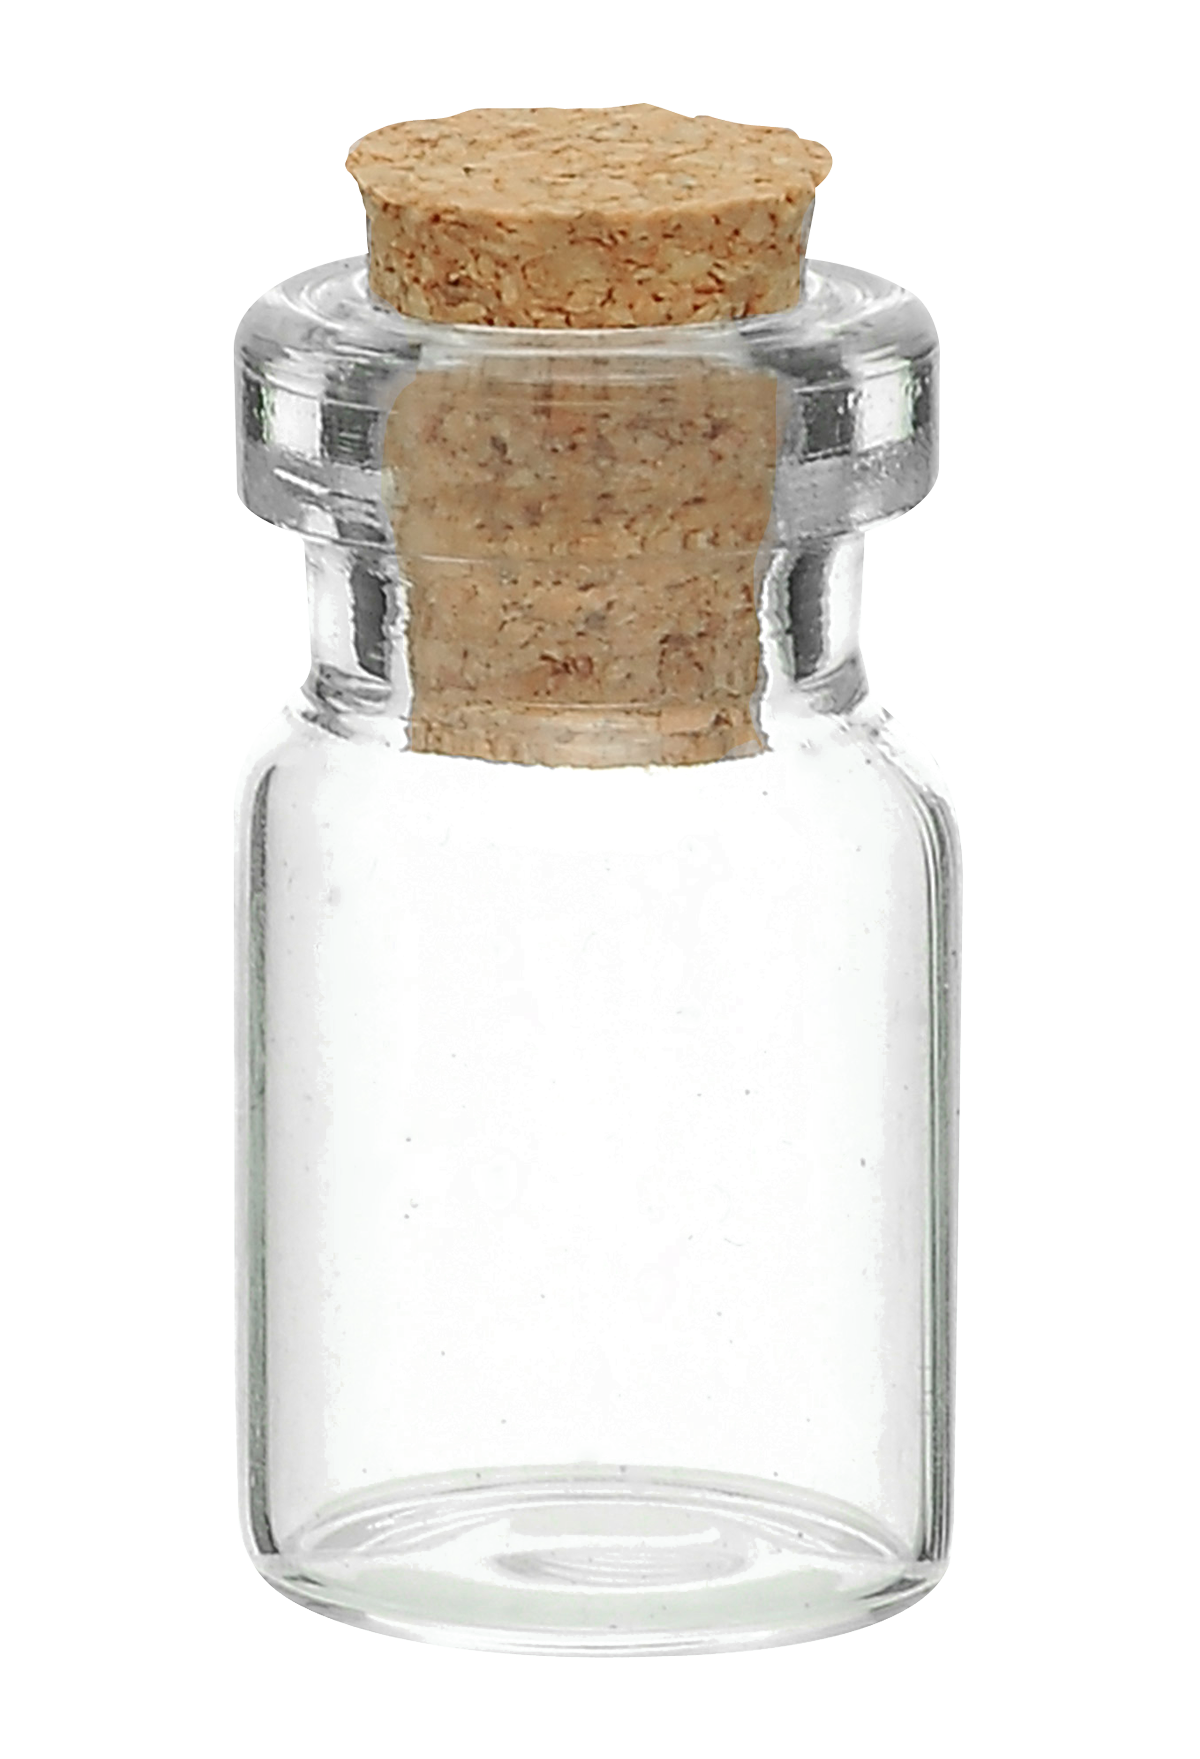 Glass bottle png image. Jar transparent background image library stock